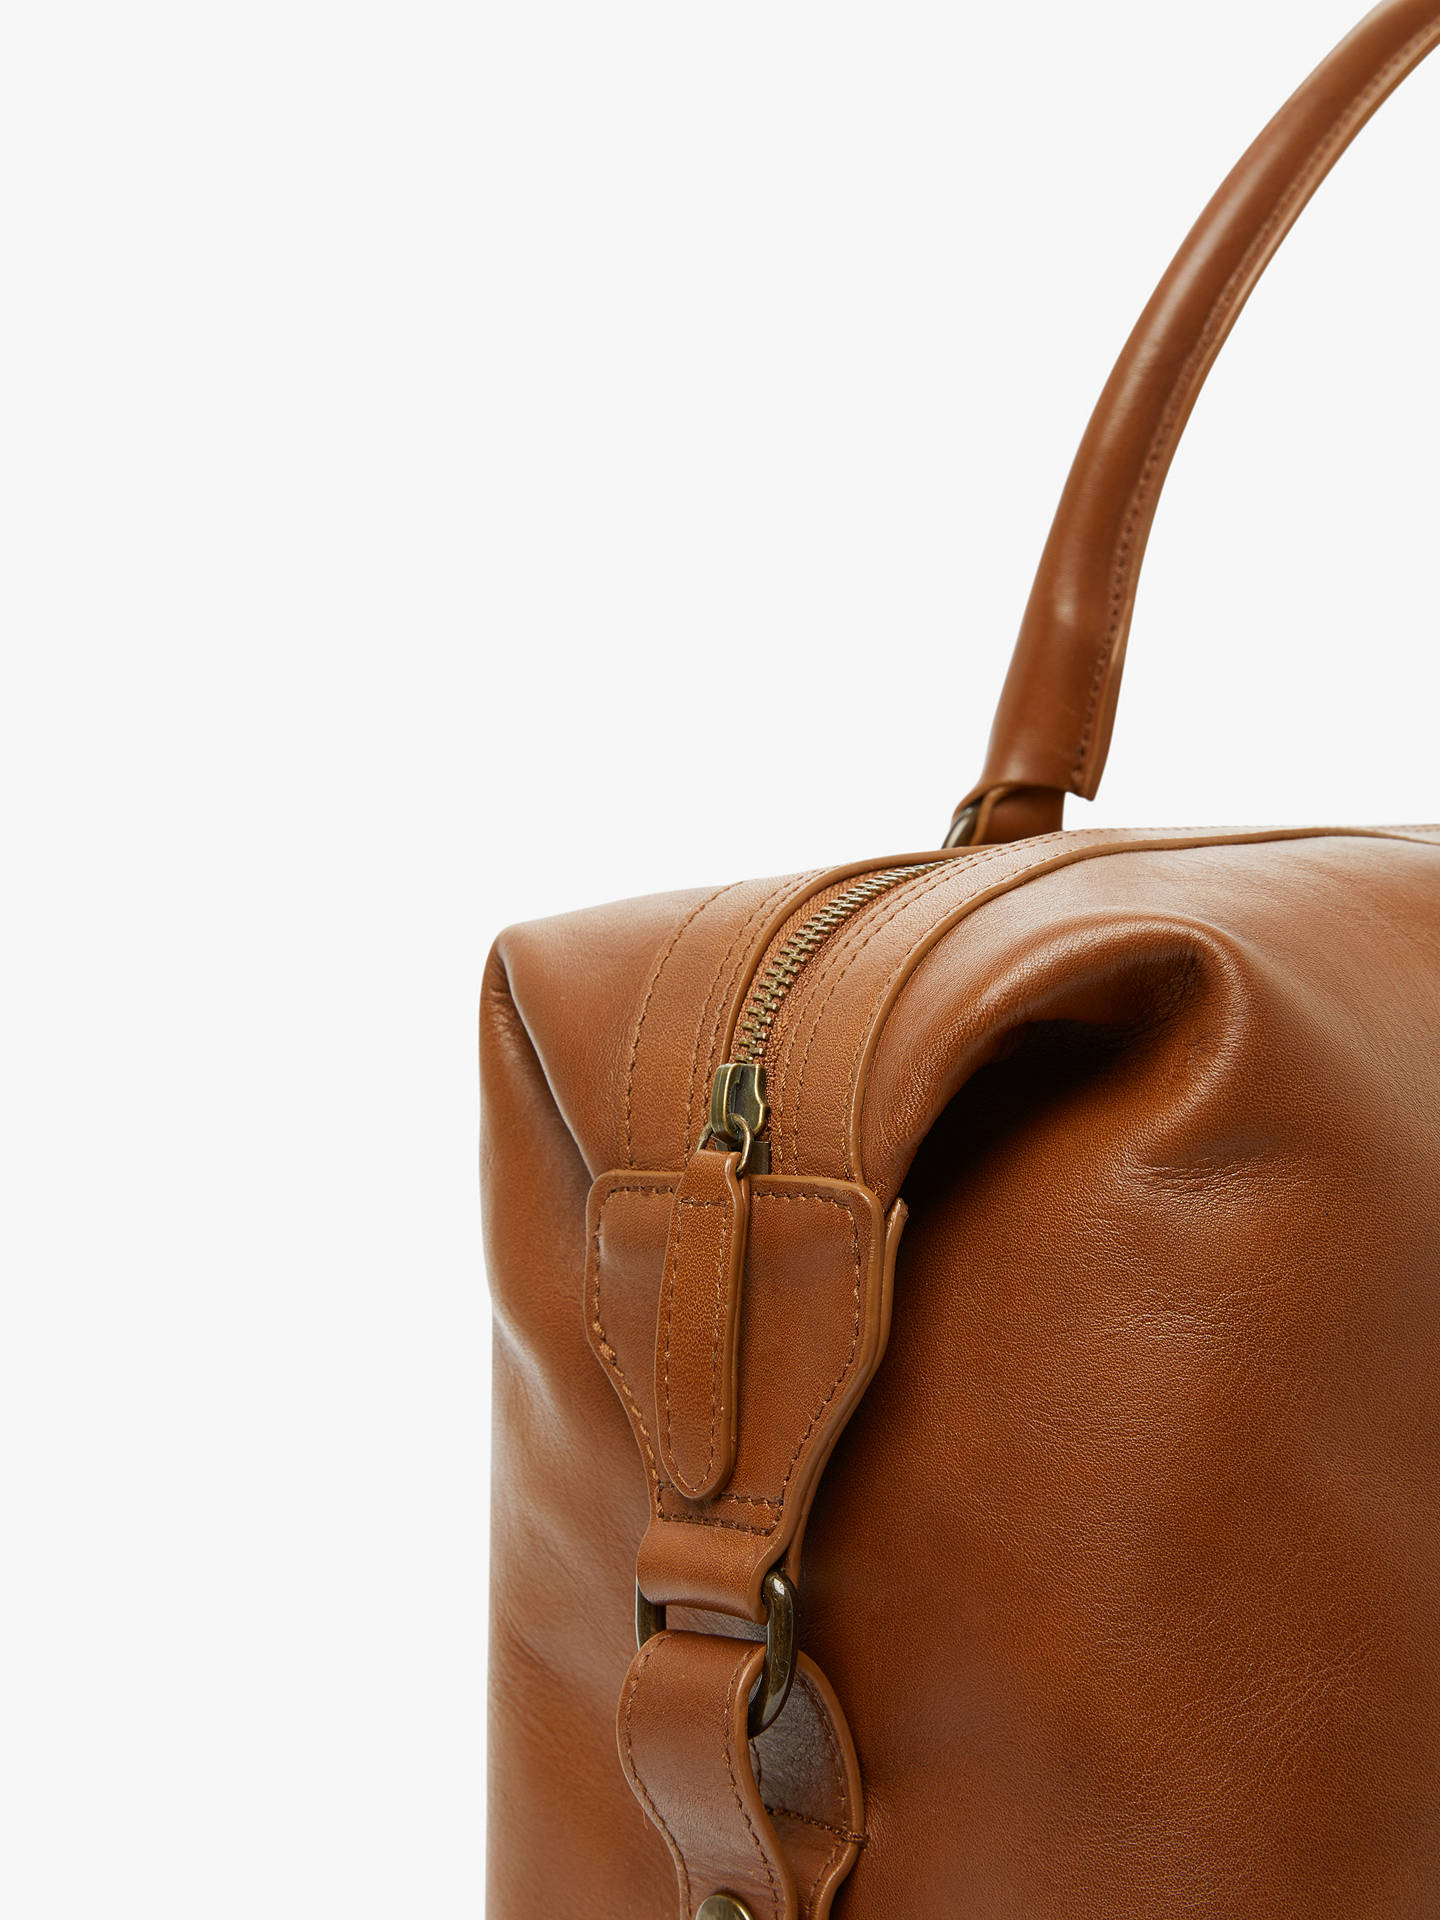 Buy John Lewis & Partners Edinburgh Leather Holdall, Tan Online at johnlewis.com